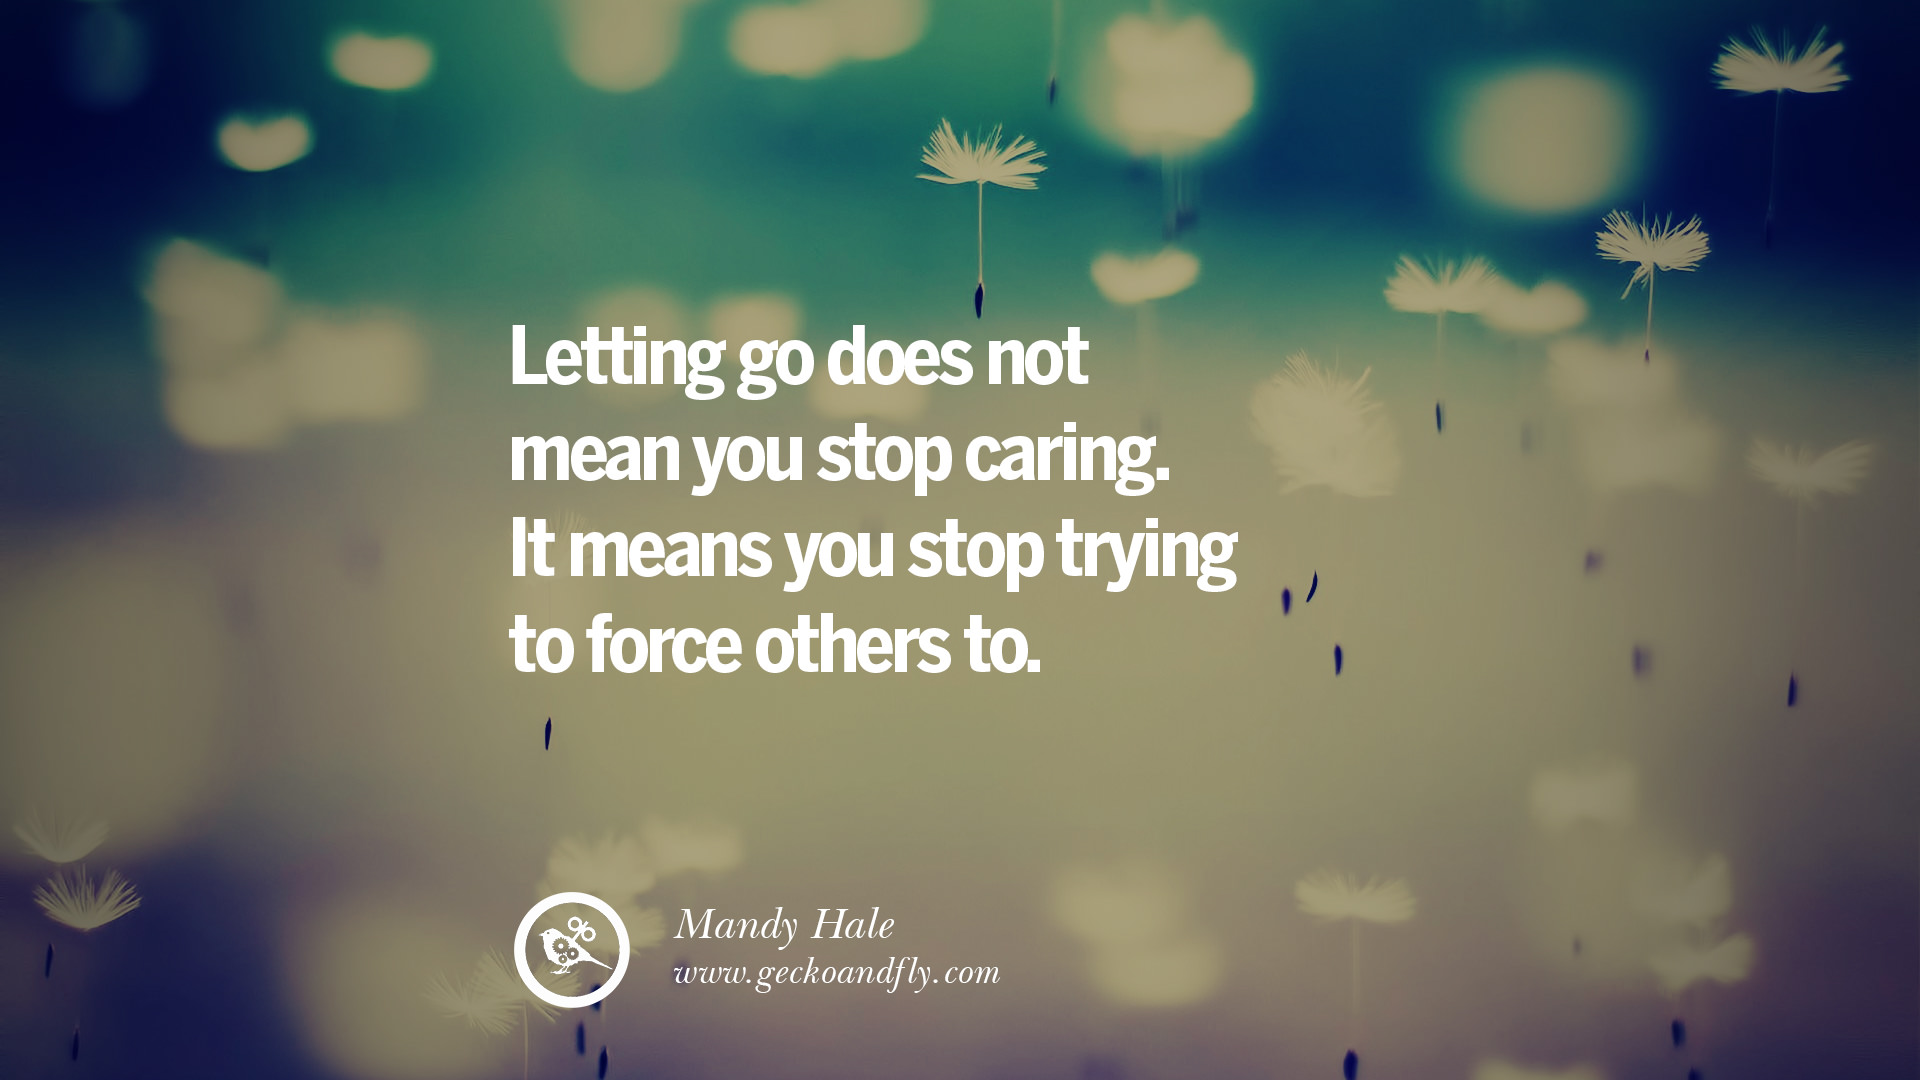 Quotes About Moving On Extraordinary 50 Quotes About Moving On And Letting Go Of Relationship And Love .